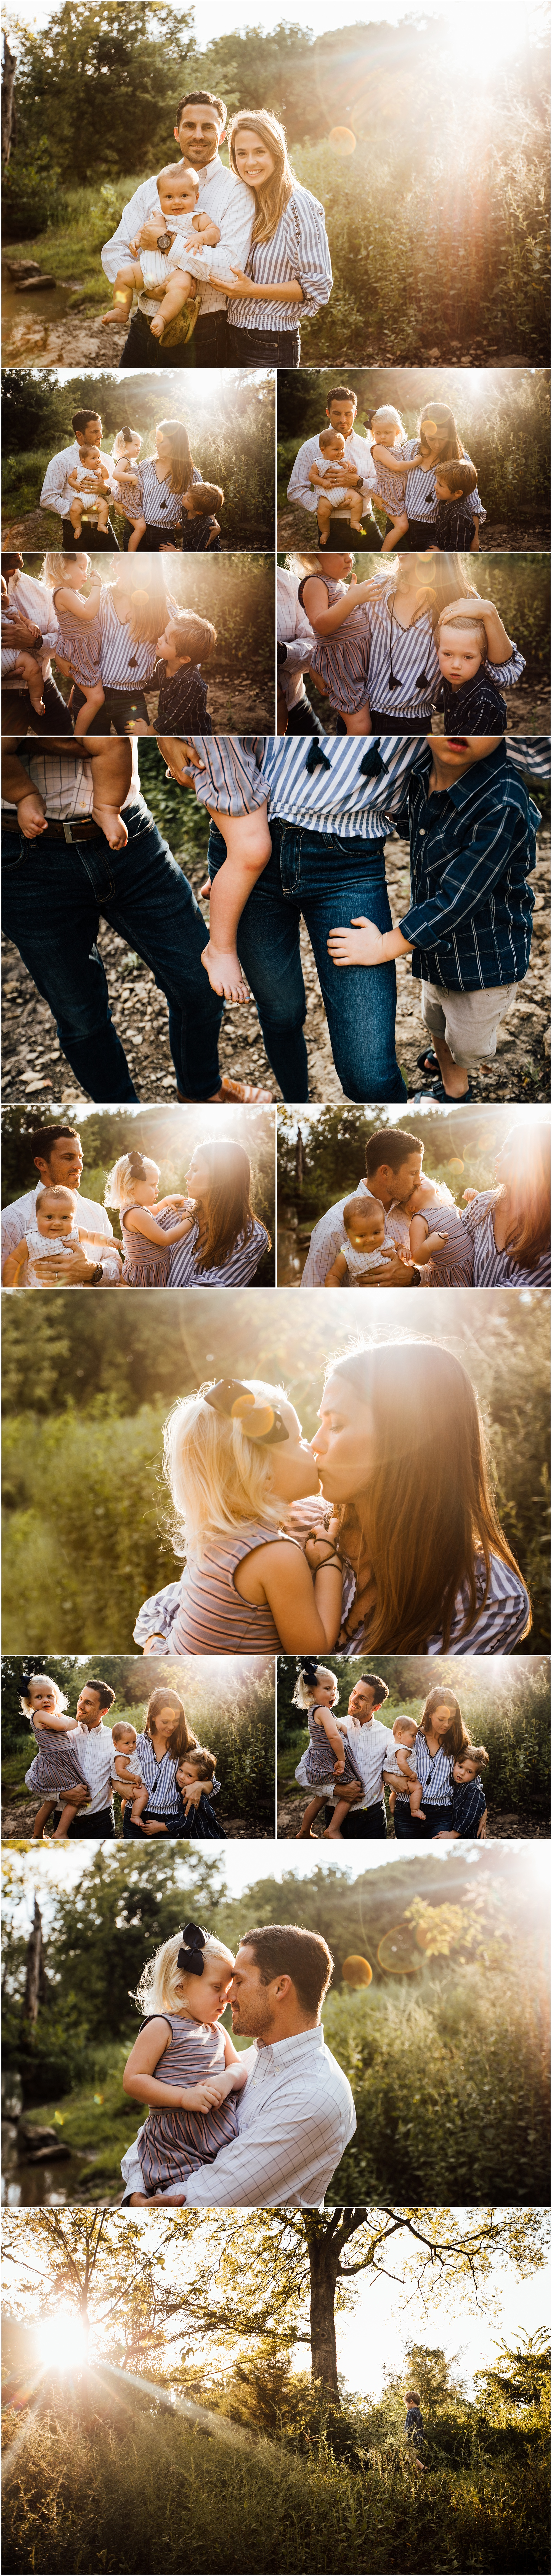 Huntsville Alabama family of 5 outdoor creek session by Rachel K Photo